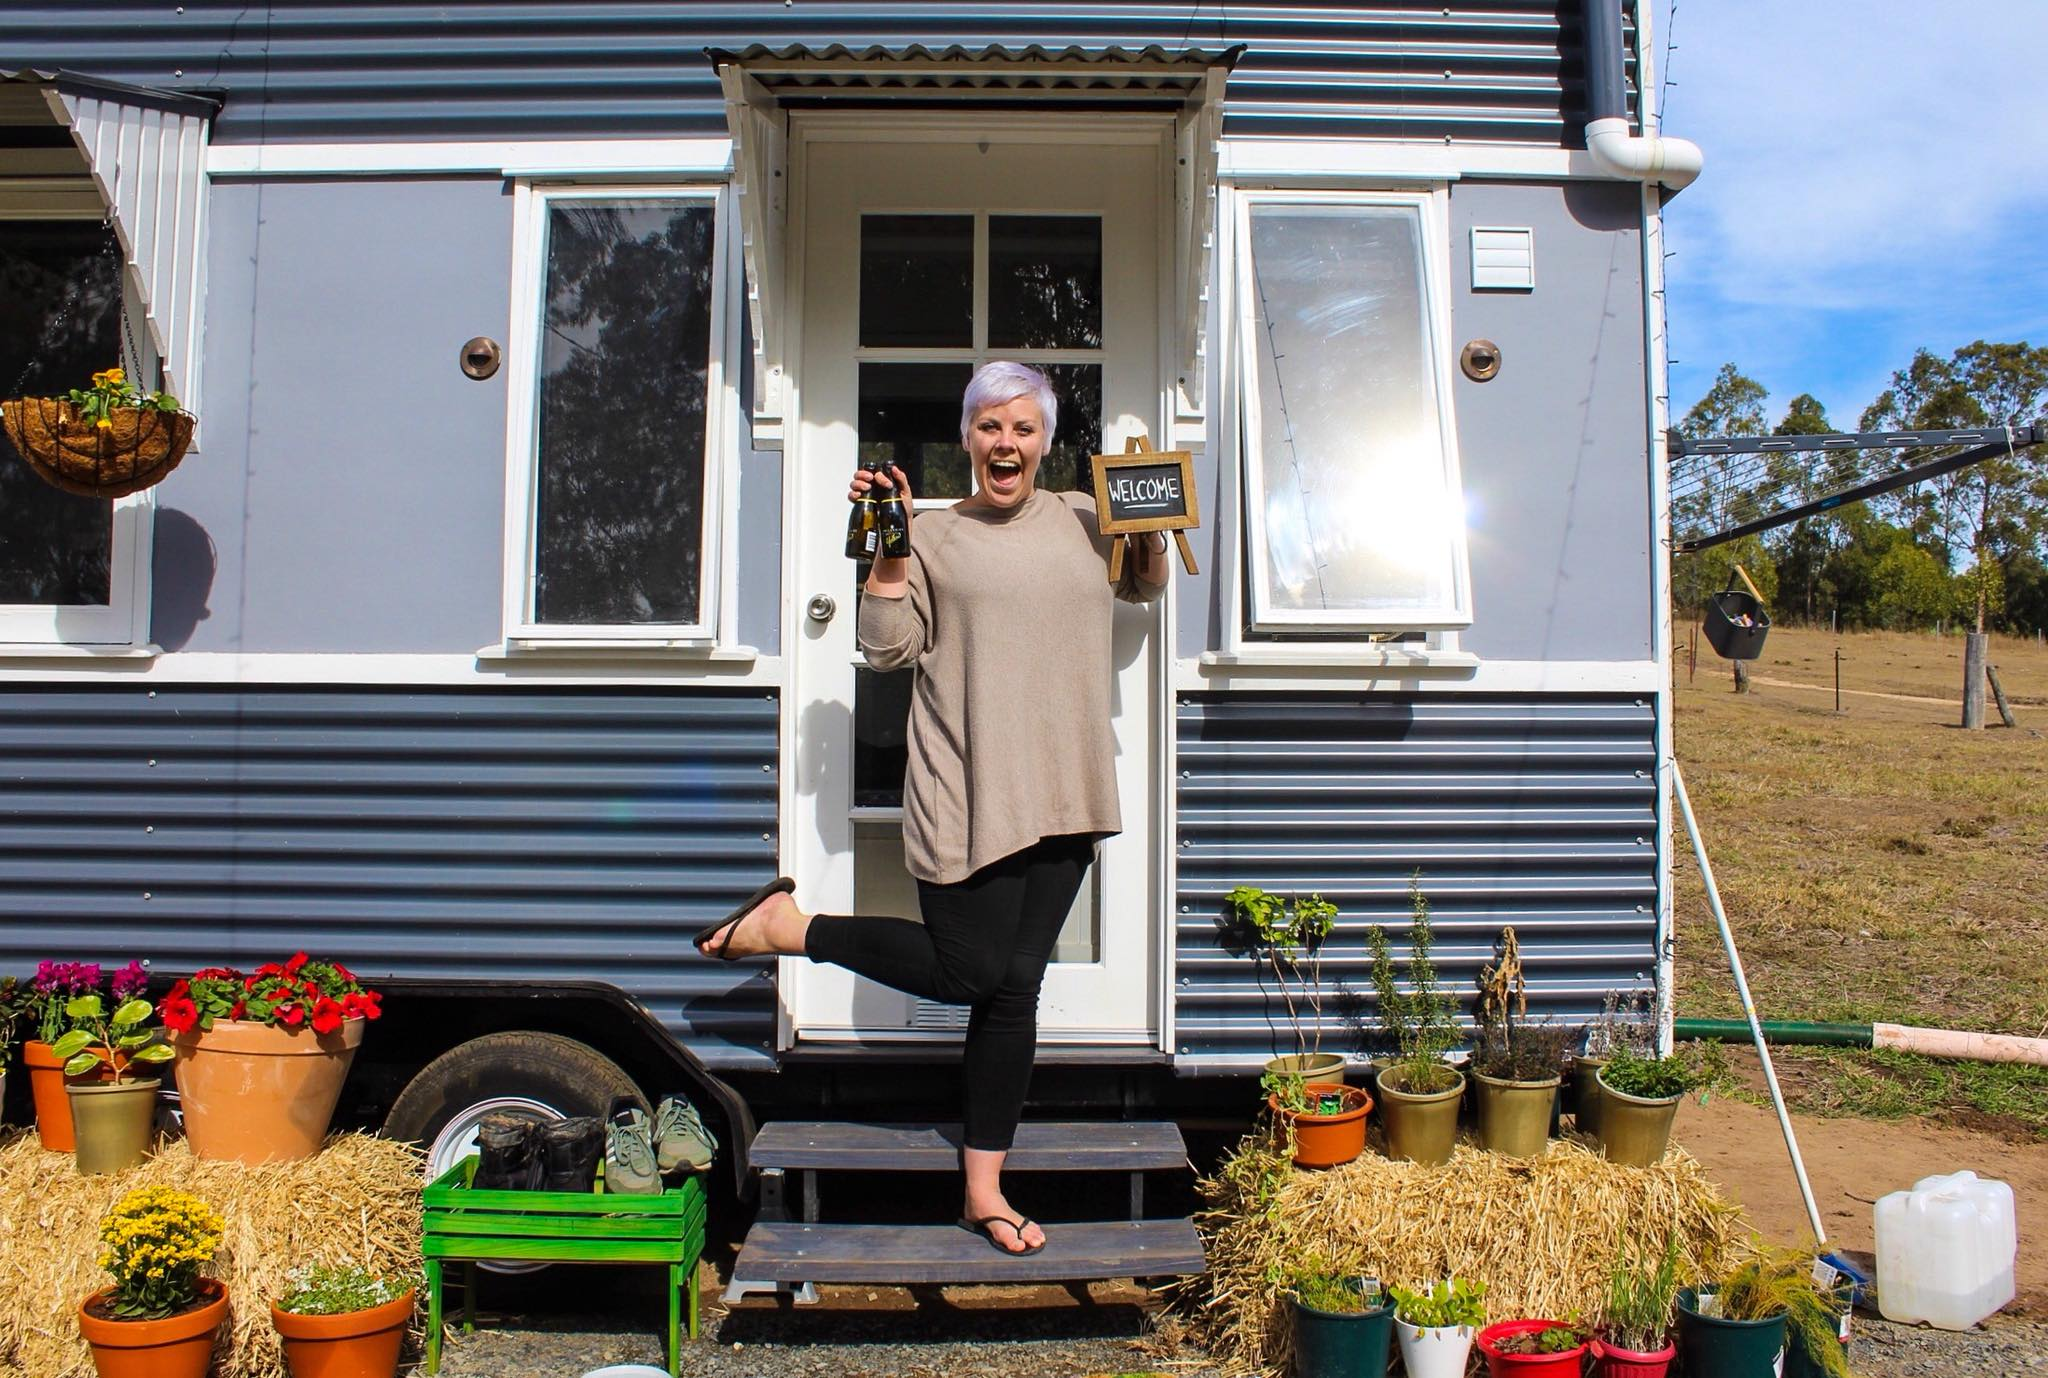 Tiny house 'Tabitha' saves couple's home ownership dreams - and she's now for sale